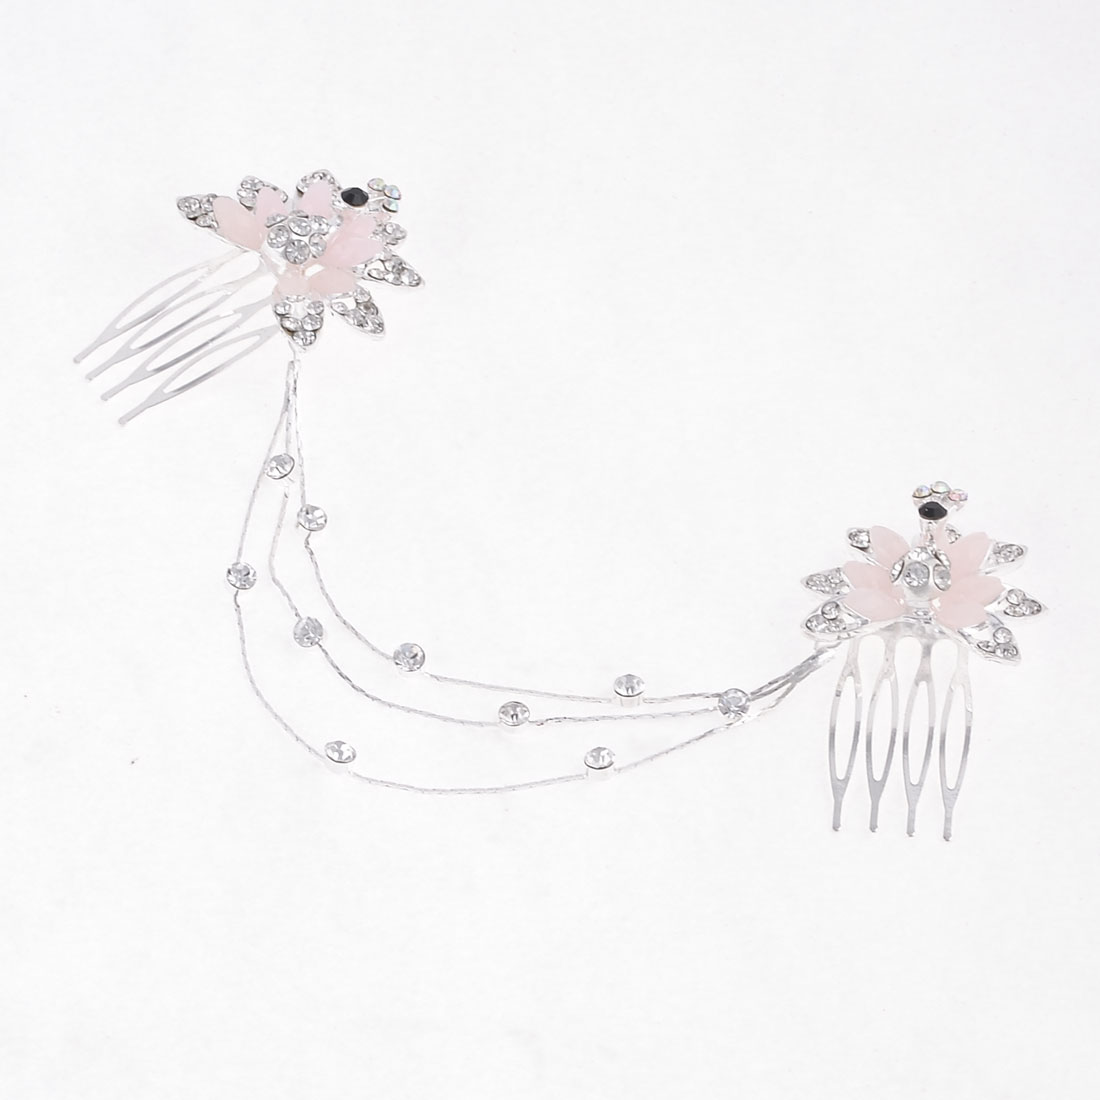 Women Bling Rhinestone Decor Metal Prong Hair Comb Clip Pink Silver Tone